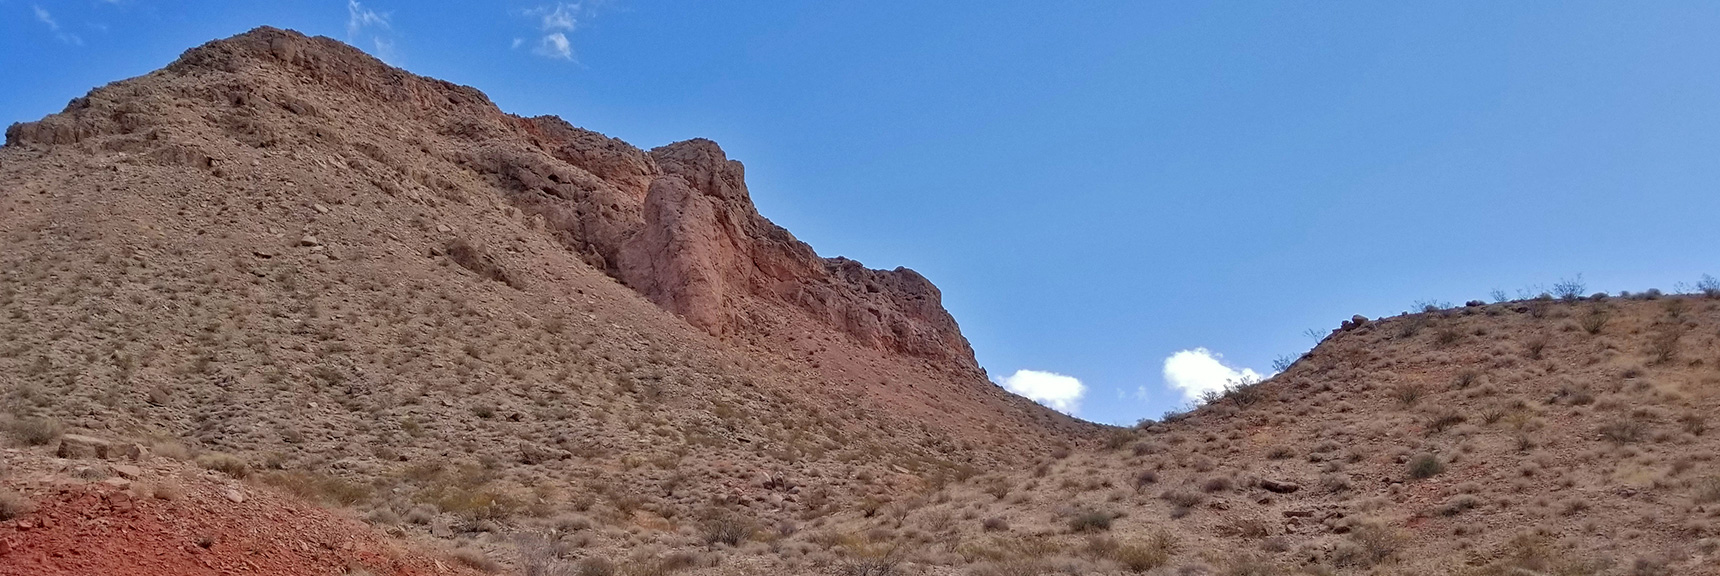 High Ridge Saddle Pass to Return Route   Northern Bowl of Fire   Lake Mead National Recreation Area, Nevada